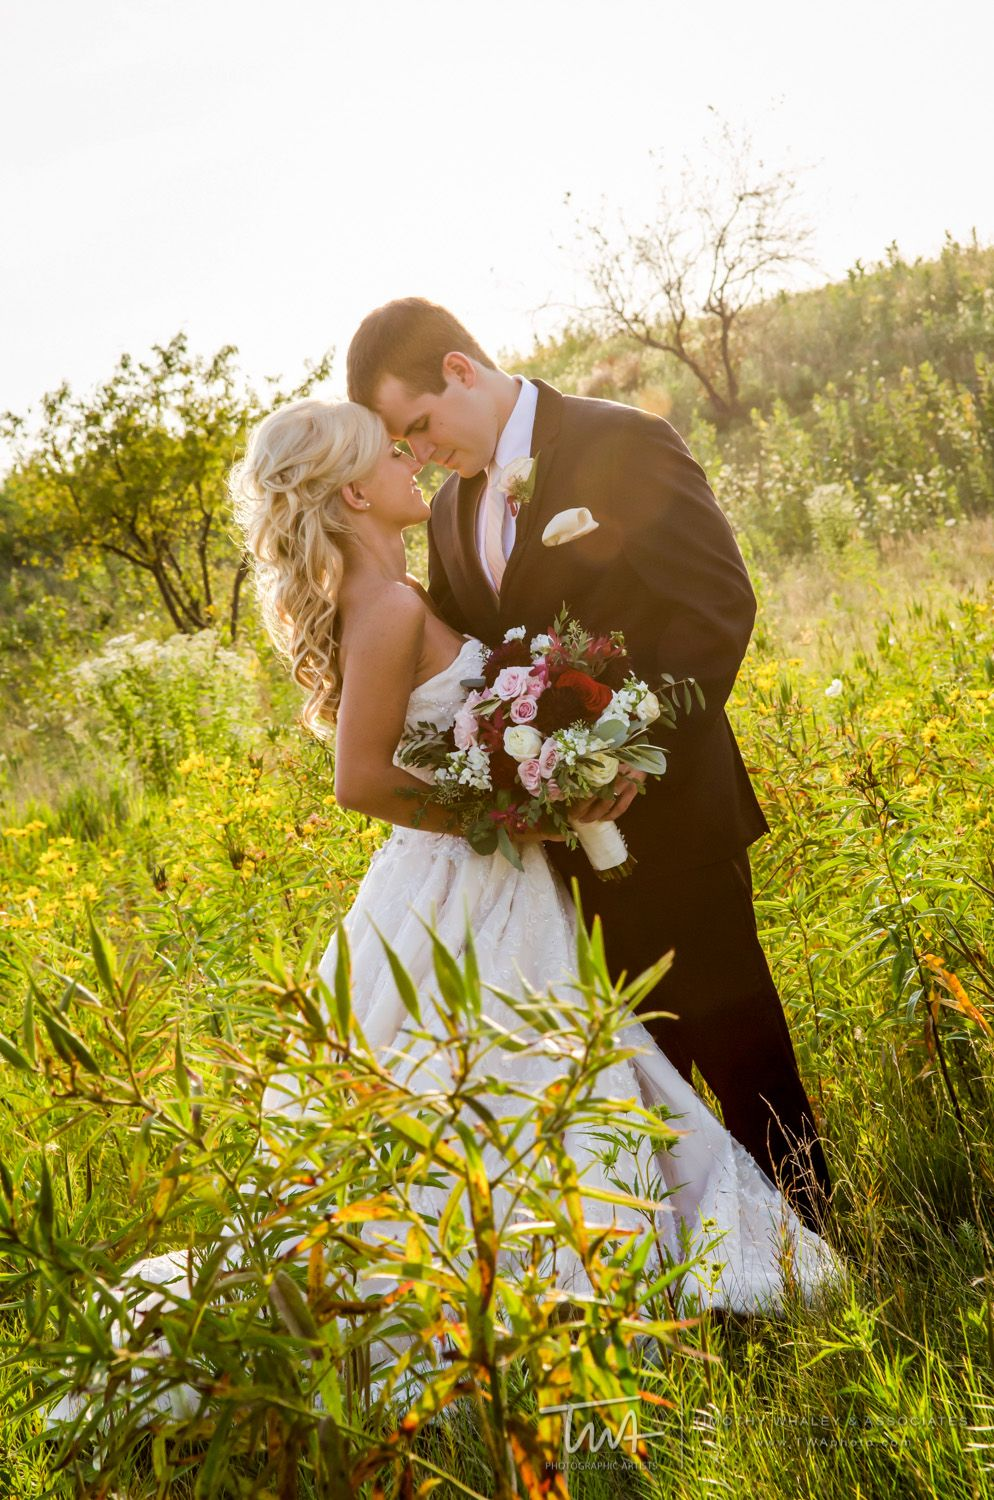 Outdoor Wedding Photography Poses Outdoor Photoshoot Ideas For Couples Cute766